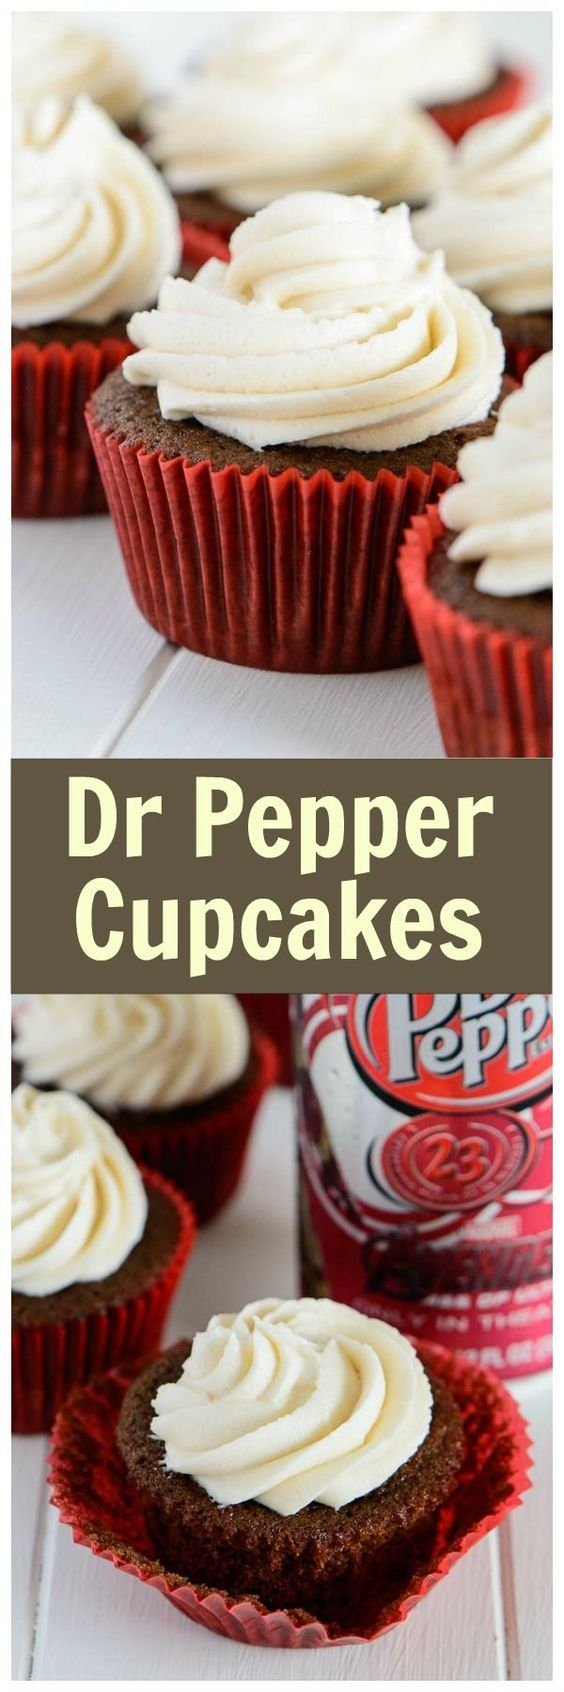 Fluffy And Moist, These Dr Pepper Cupcakes Are My Absolute Favorite The  Brown Butter